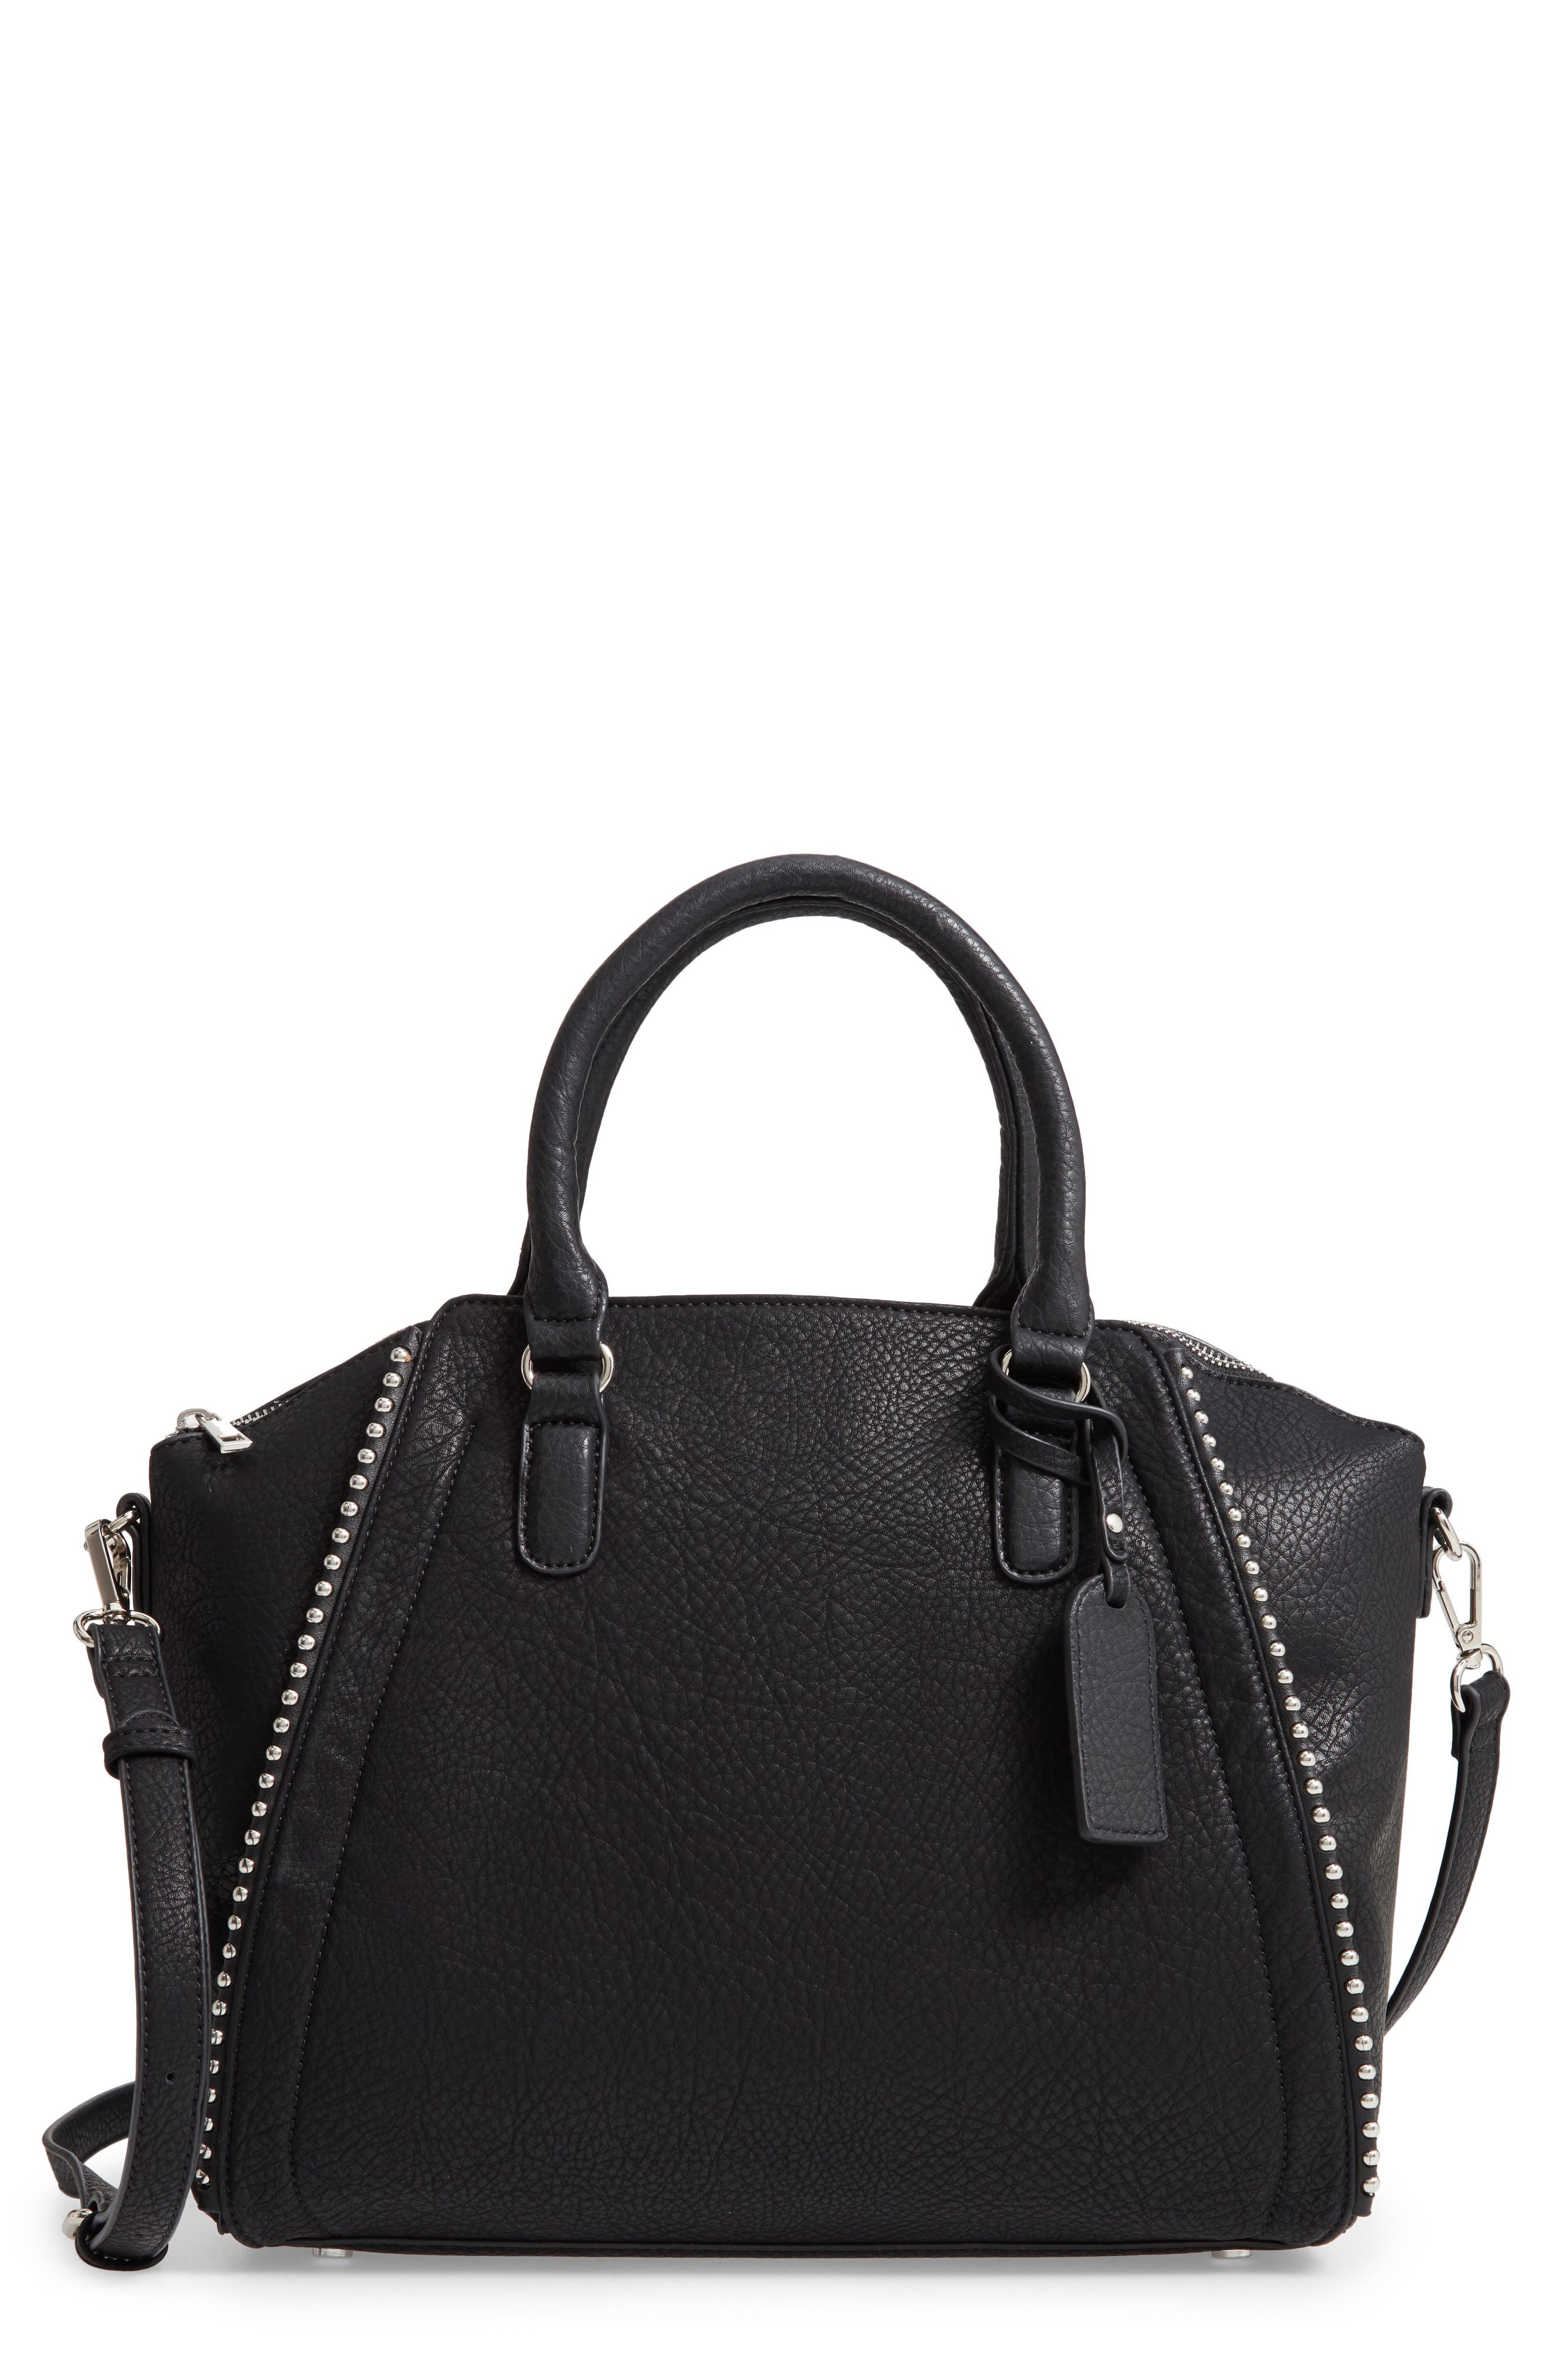 SOLE SOCIETY,                             Eytal Faux Leather Tote,                             Main thumbnail 1, color,                             001